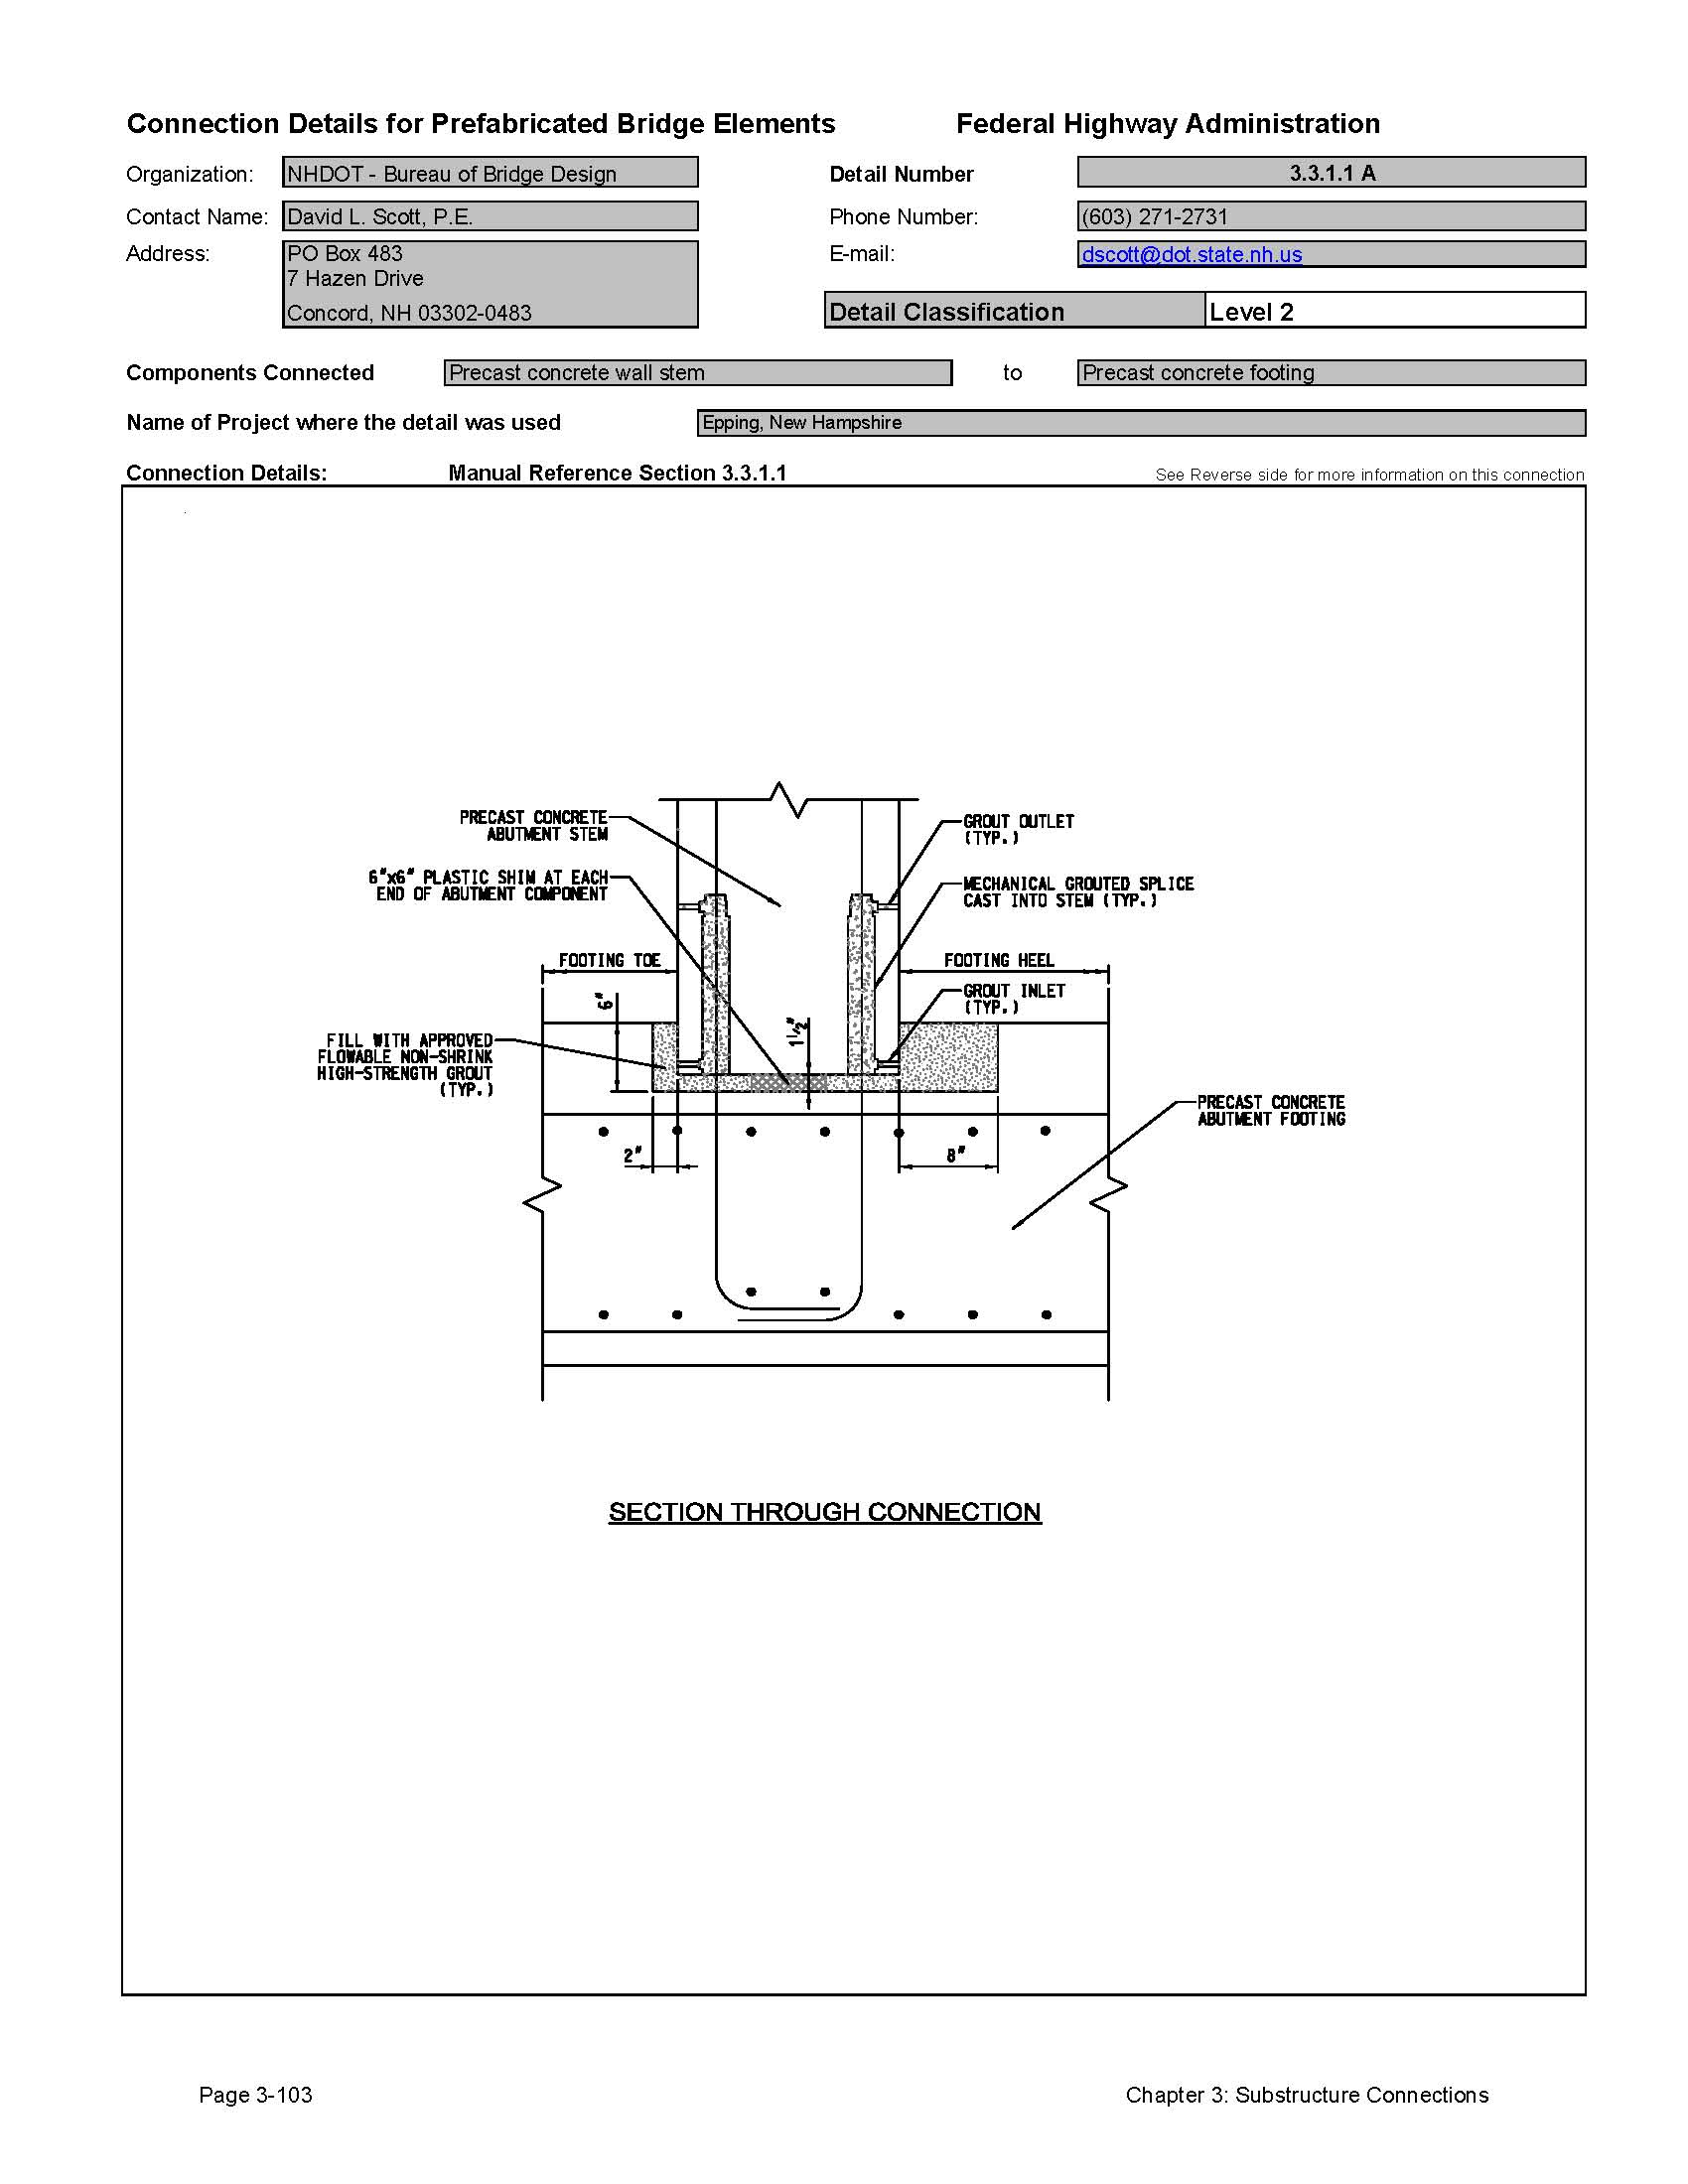 this data sheet shows the connection between a precast concrete wall stem and precast concrete footing - Block Retaining Wall Design Manual